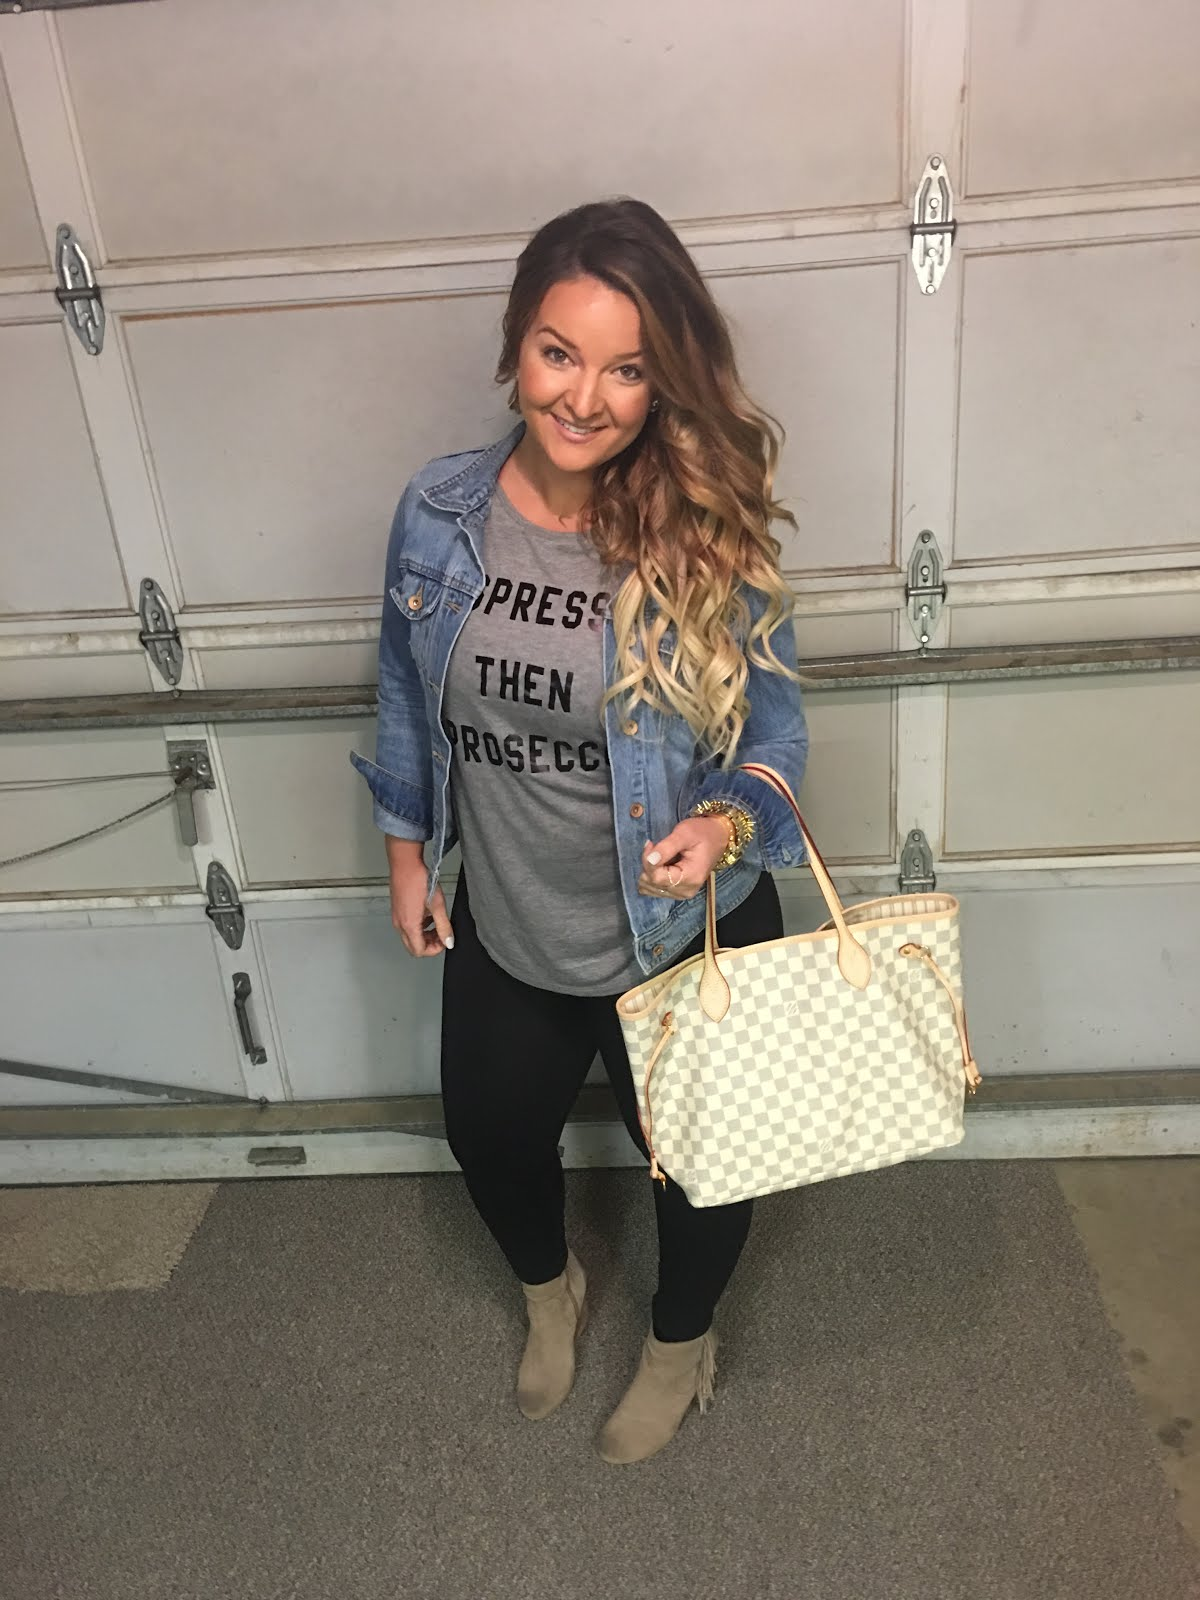 Espresso then Prosecco Tee by Colorado fashion blogger Delayna Denaye